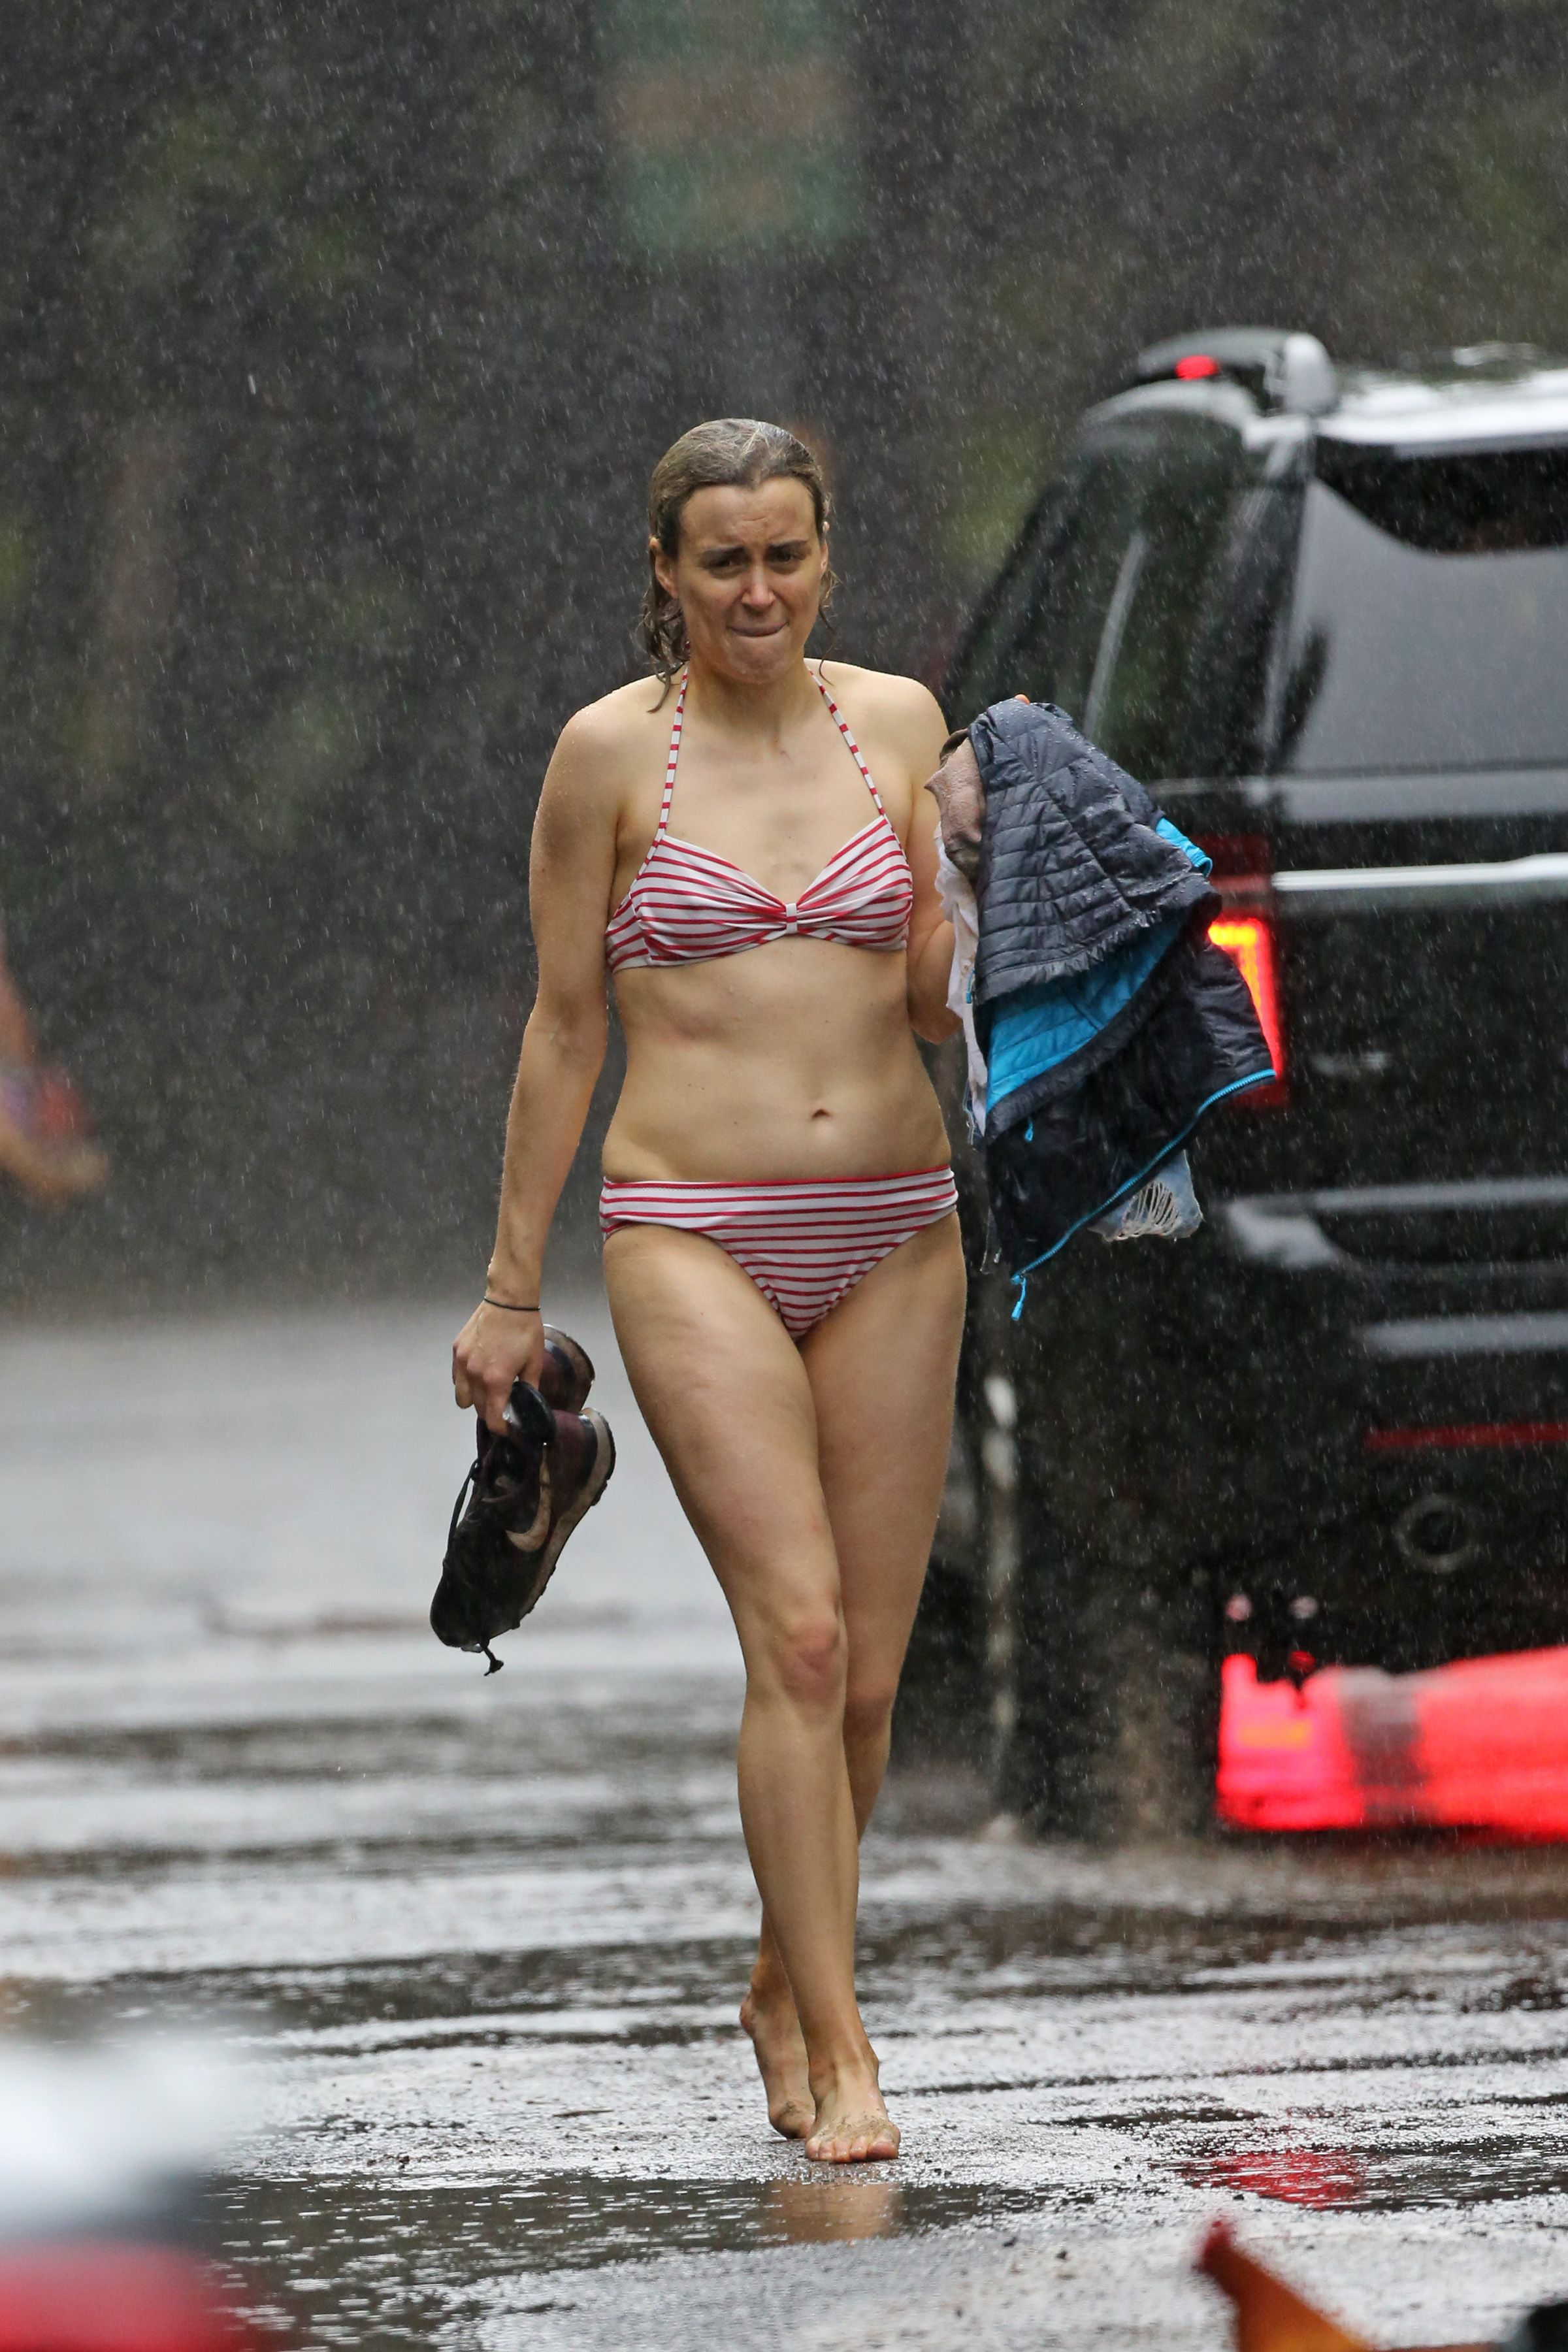 DRIP! TV Actress Taylor Schilling Boobs • Fappening Sauce